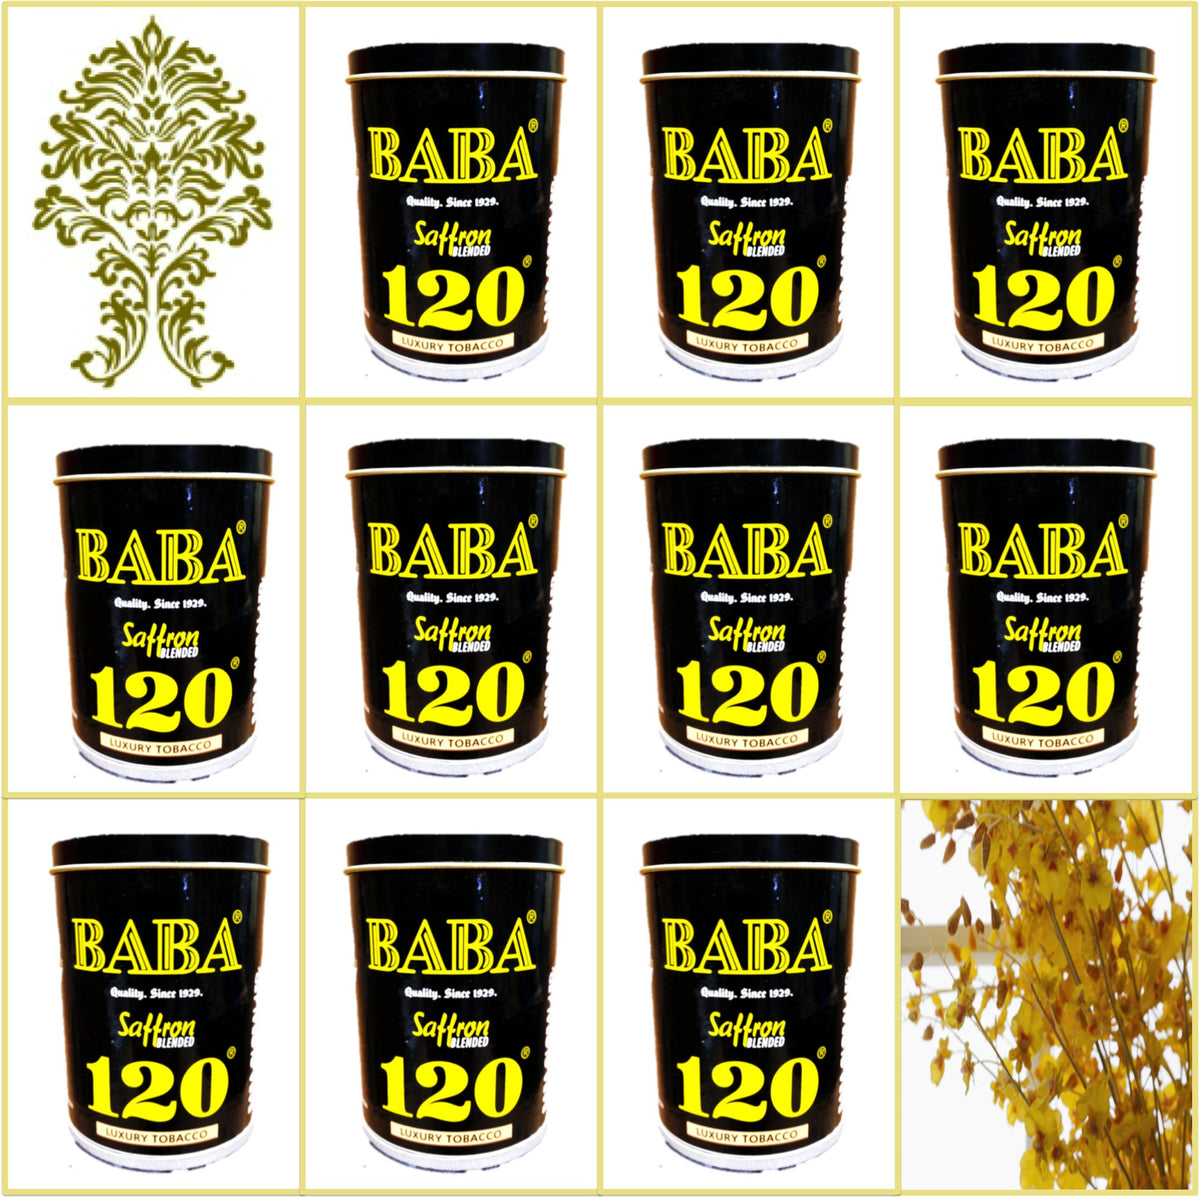 10 Cans Baba 120 Saffron Blended Luxury Tobacco 50g Each September 2019